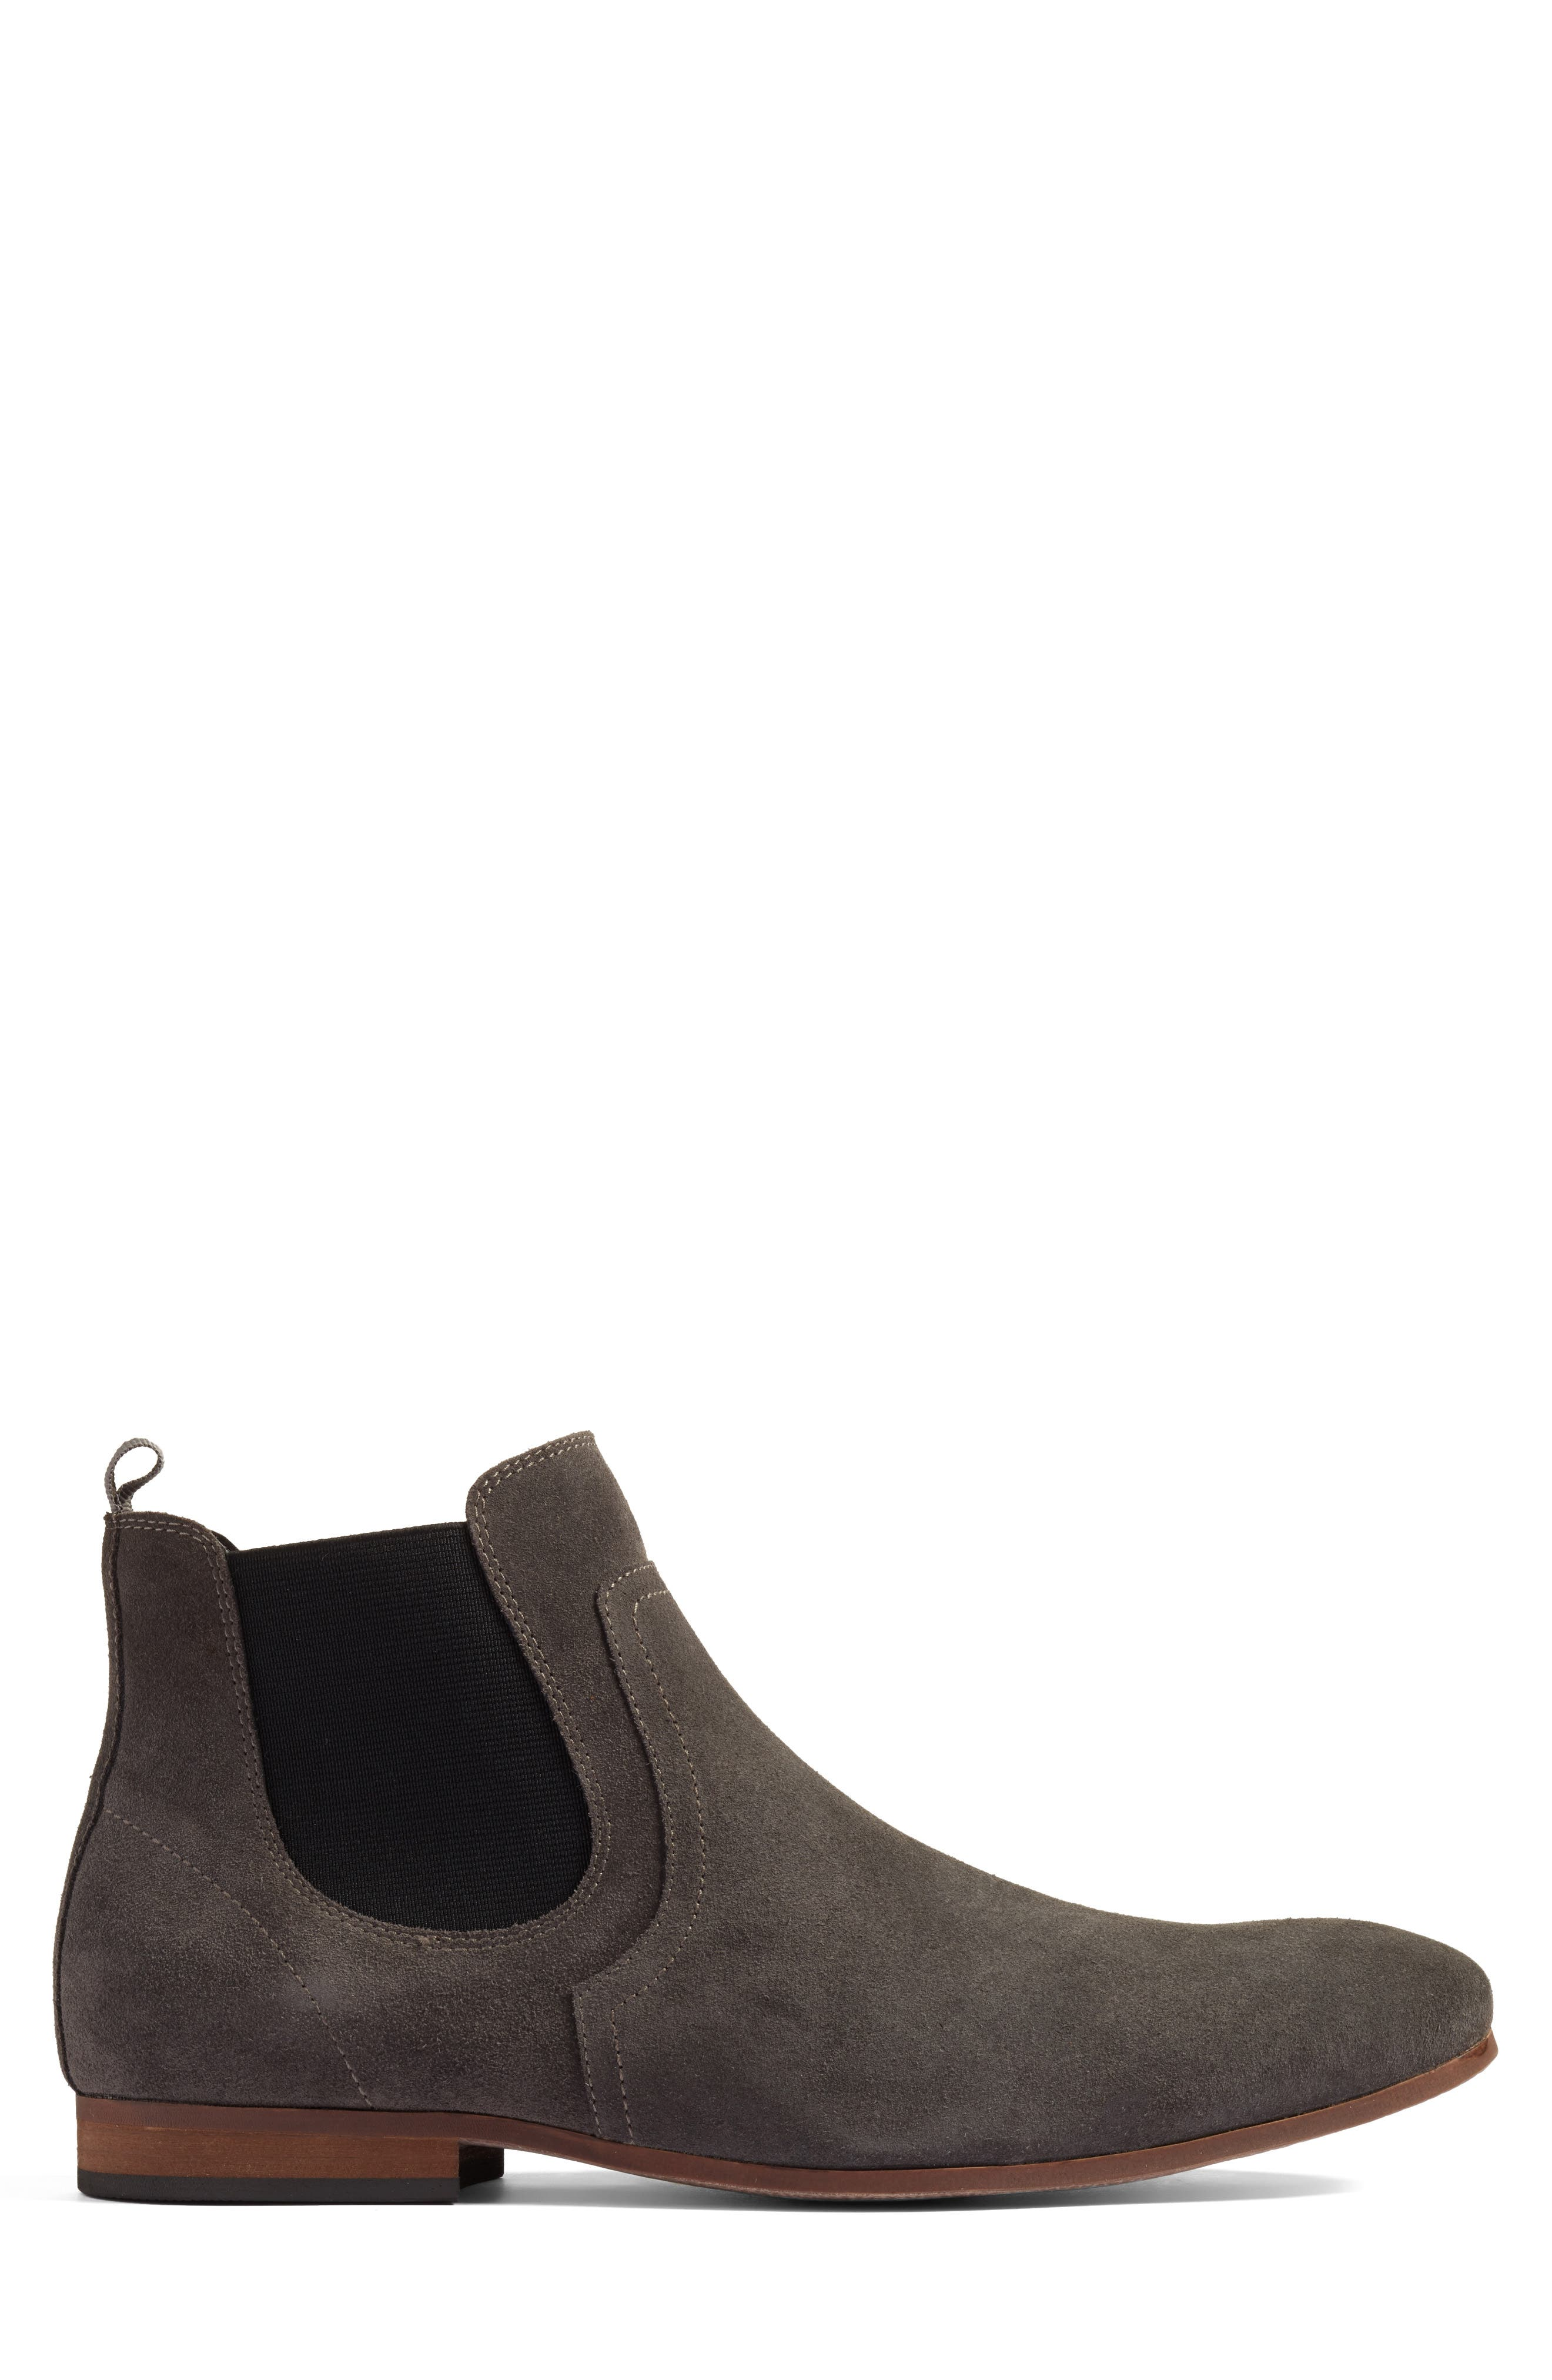 Brysen Chelsea Boot,                             Alternate thumbnail 37, color,